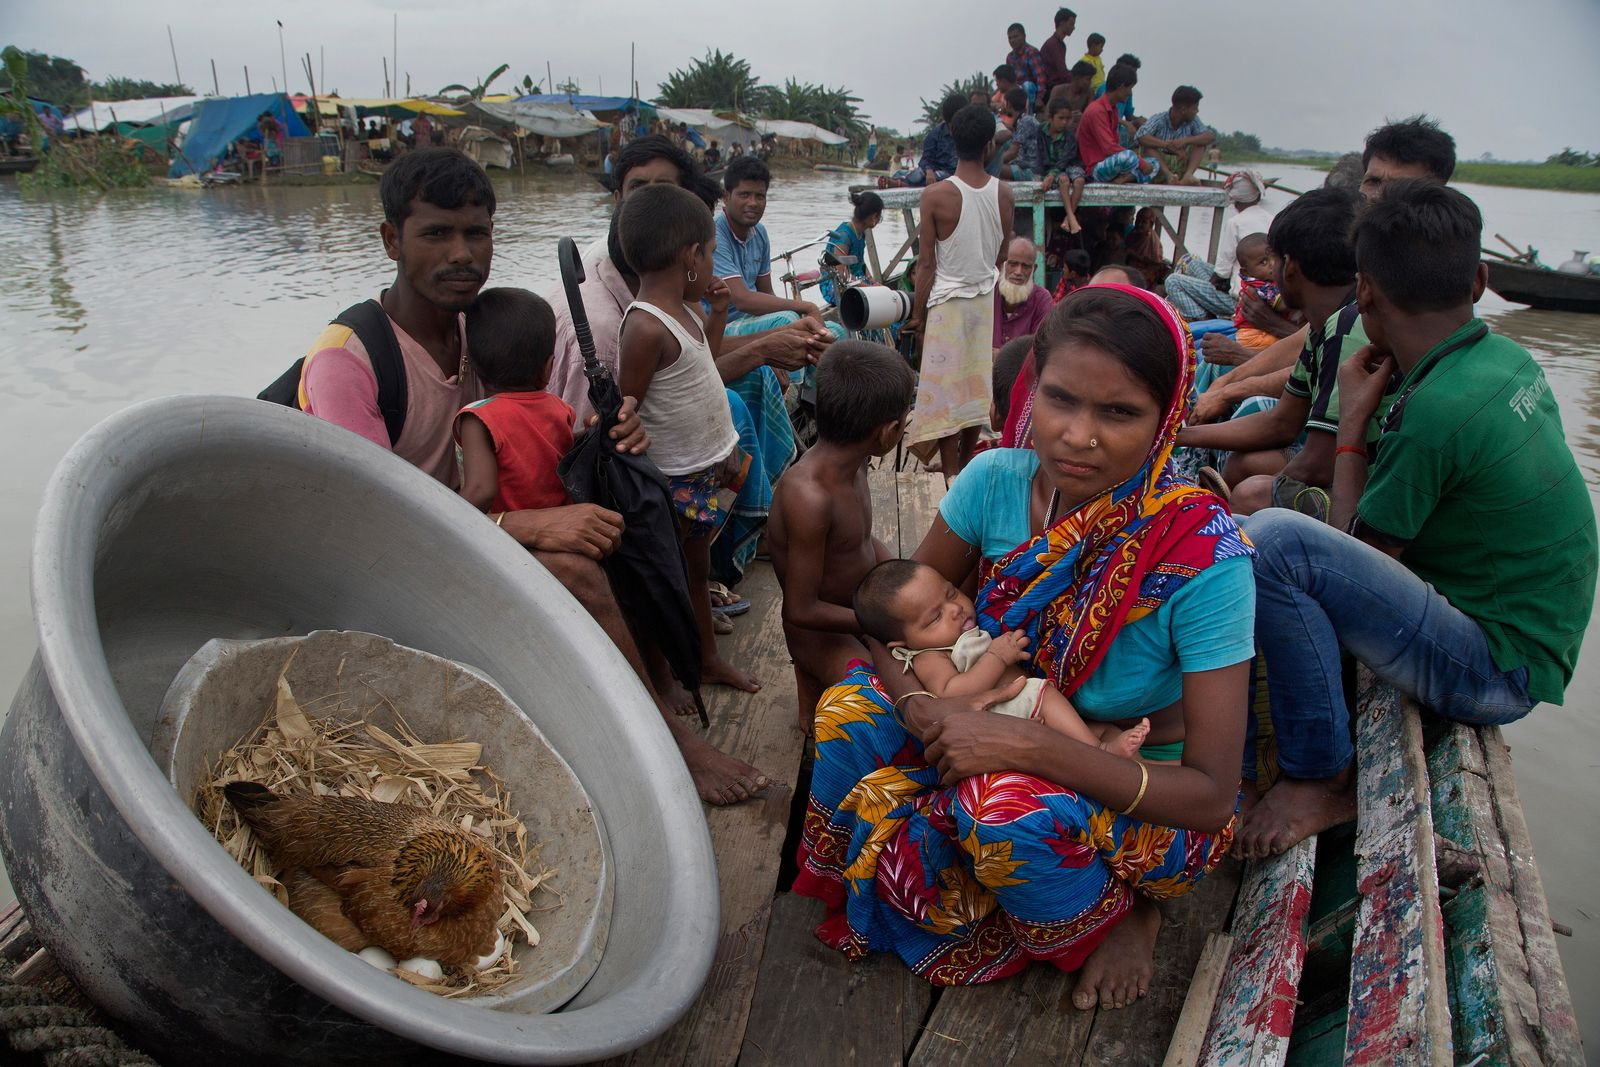 Indian woman Amena Khatoon, 22, holding her two month old baby girl Umahani sits on a boat as a hen hatches its eggs in a container as flood affected villagers travel on a boat in Katahguri village along the river Brahmaputra, east of Gauhati, India, Sunday, July 14, 2019. Officials in northeastern India said more than a dozen people were killed and over a million affected by flooding. Rain-triggered floods, mudslides and lightning have left a trail of destruction in other parts of South Asia. (AP Photo/Anupam Nath)